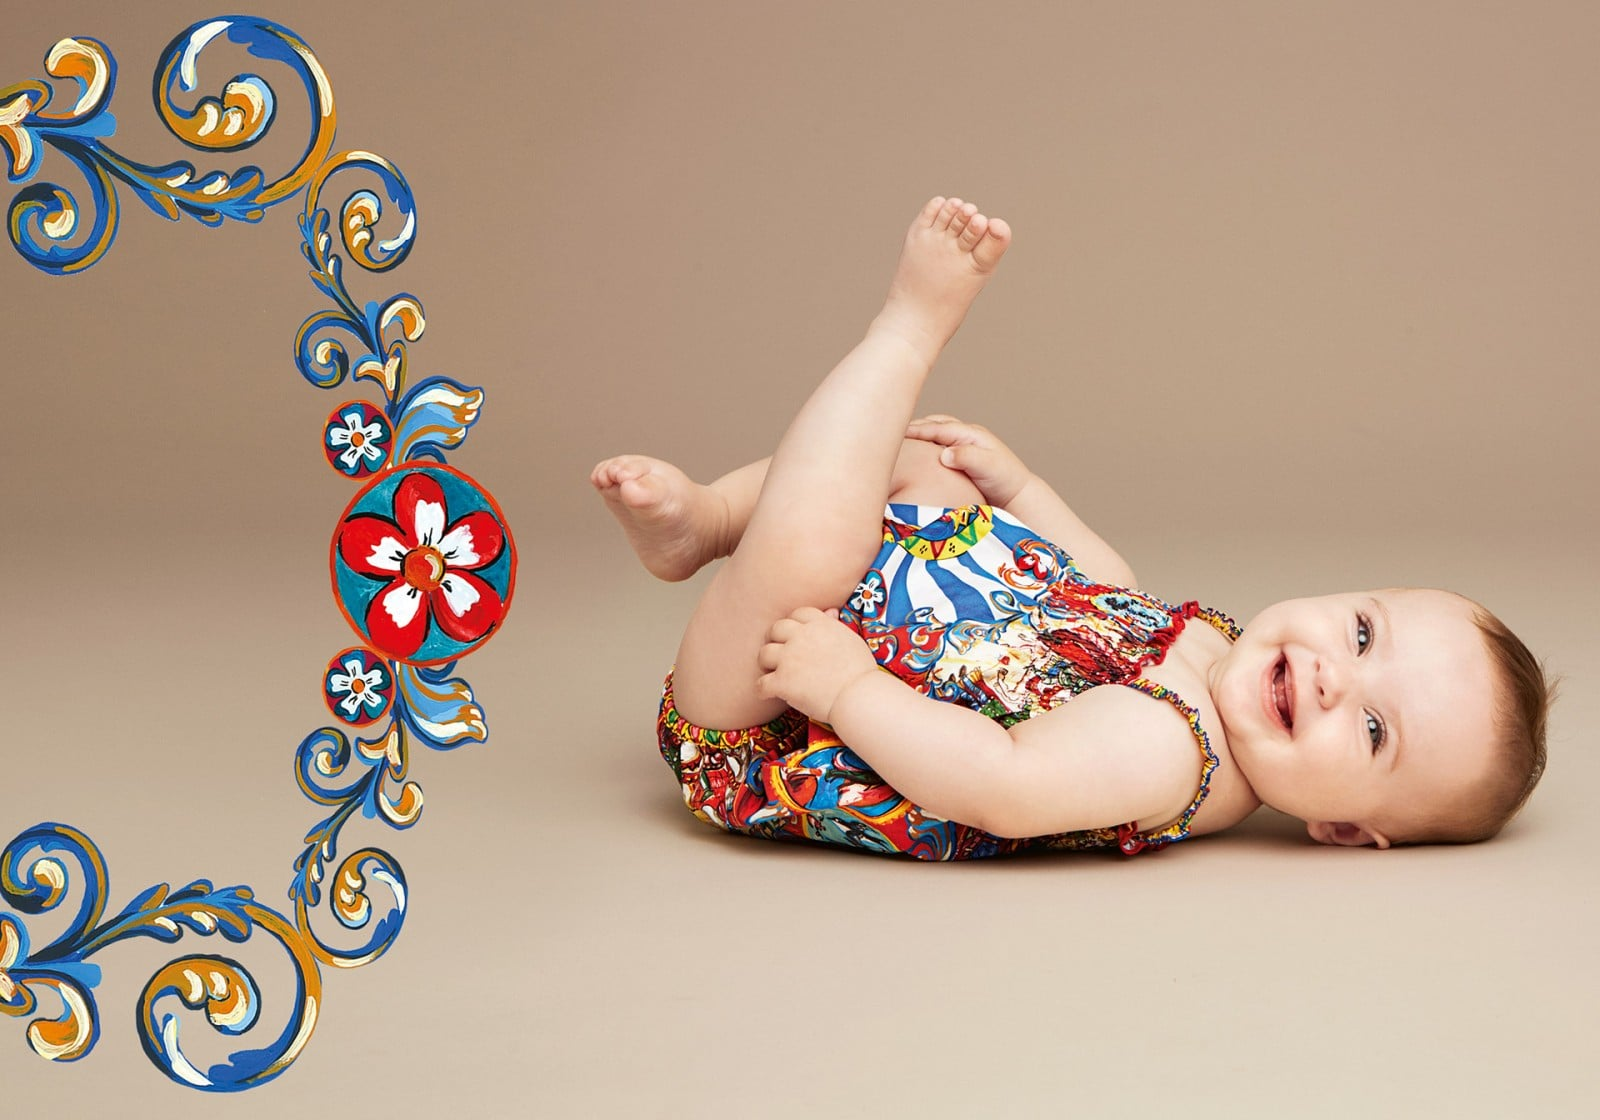 dolce-and-gabbana-summer-2016-child-collection-251-1600x1120.jpg